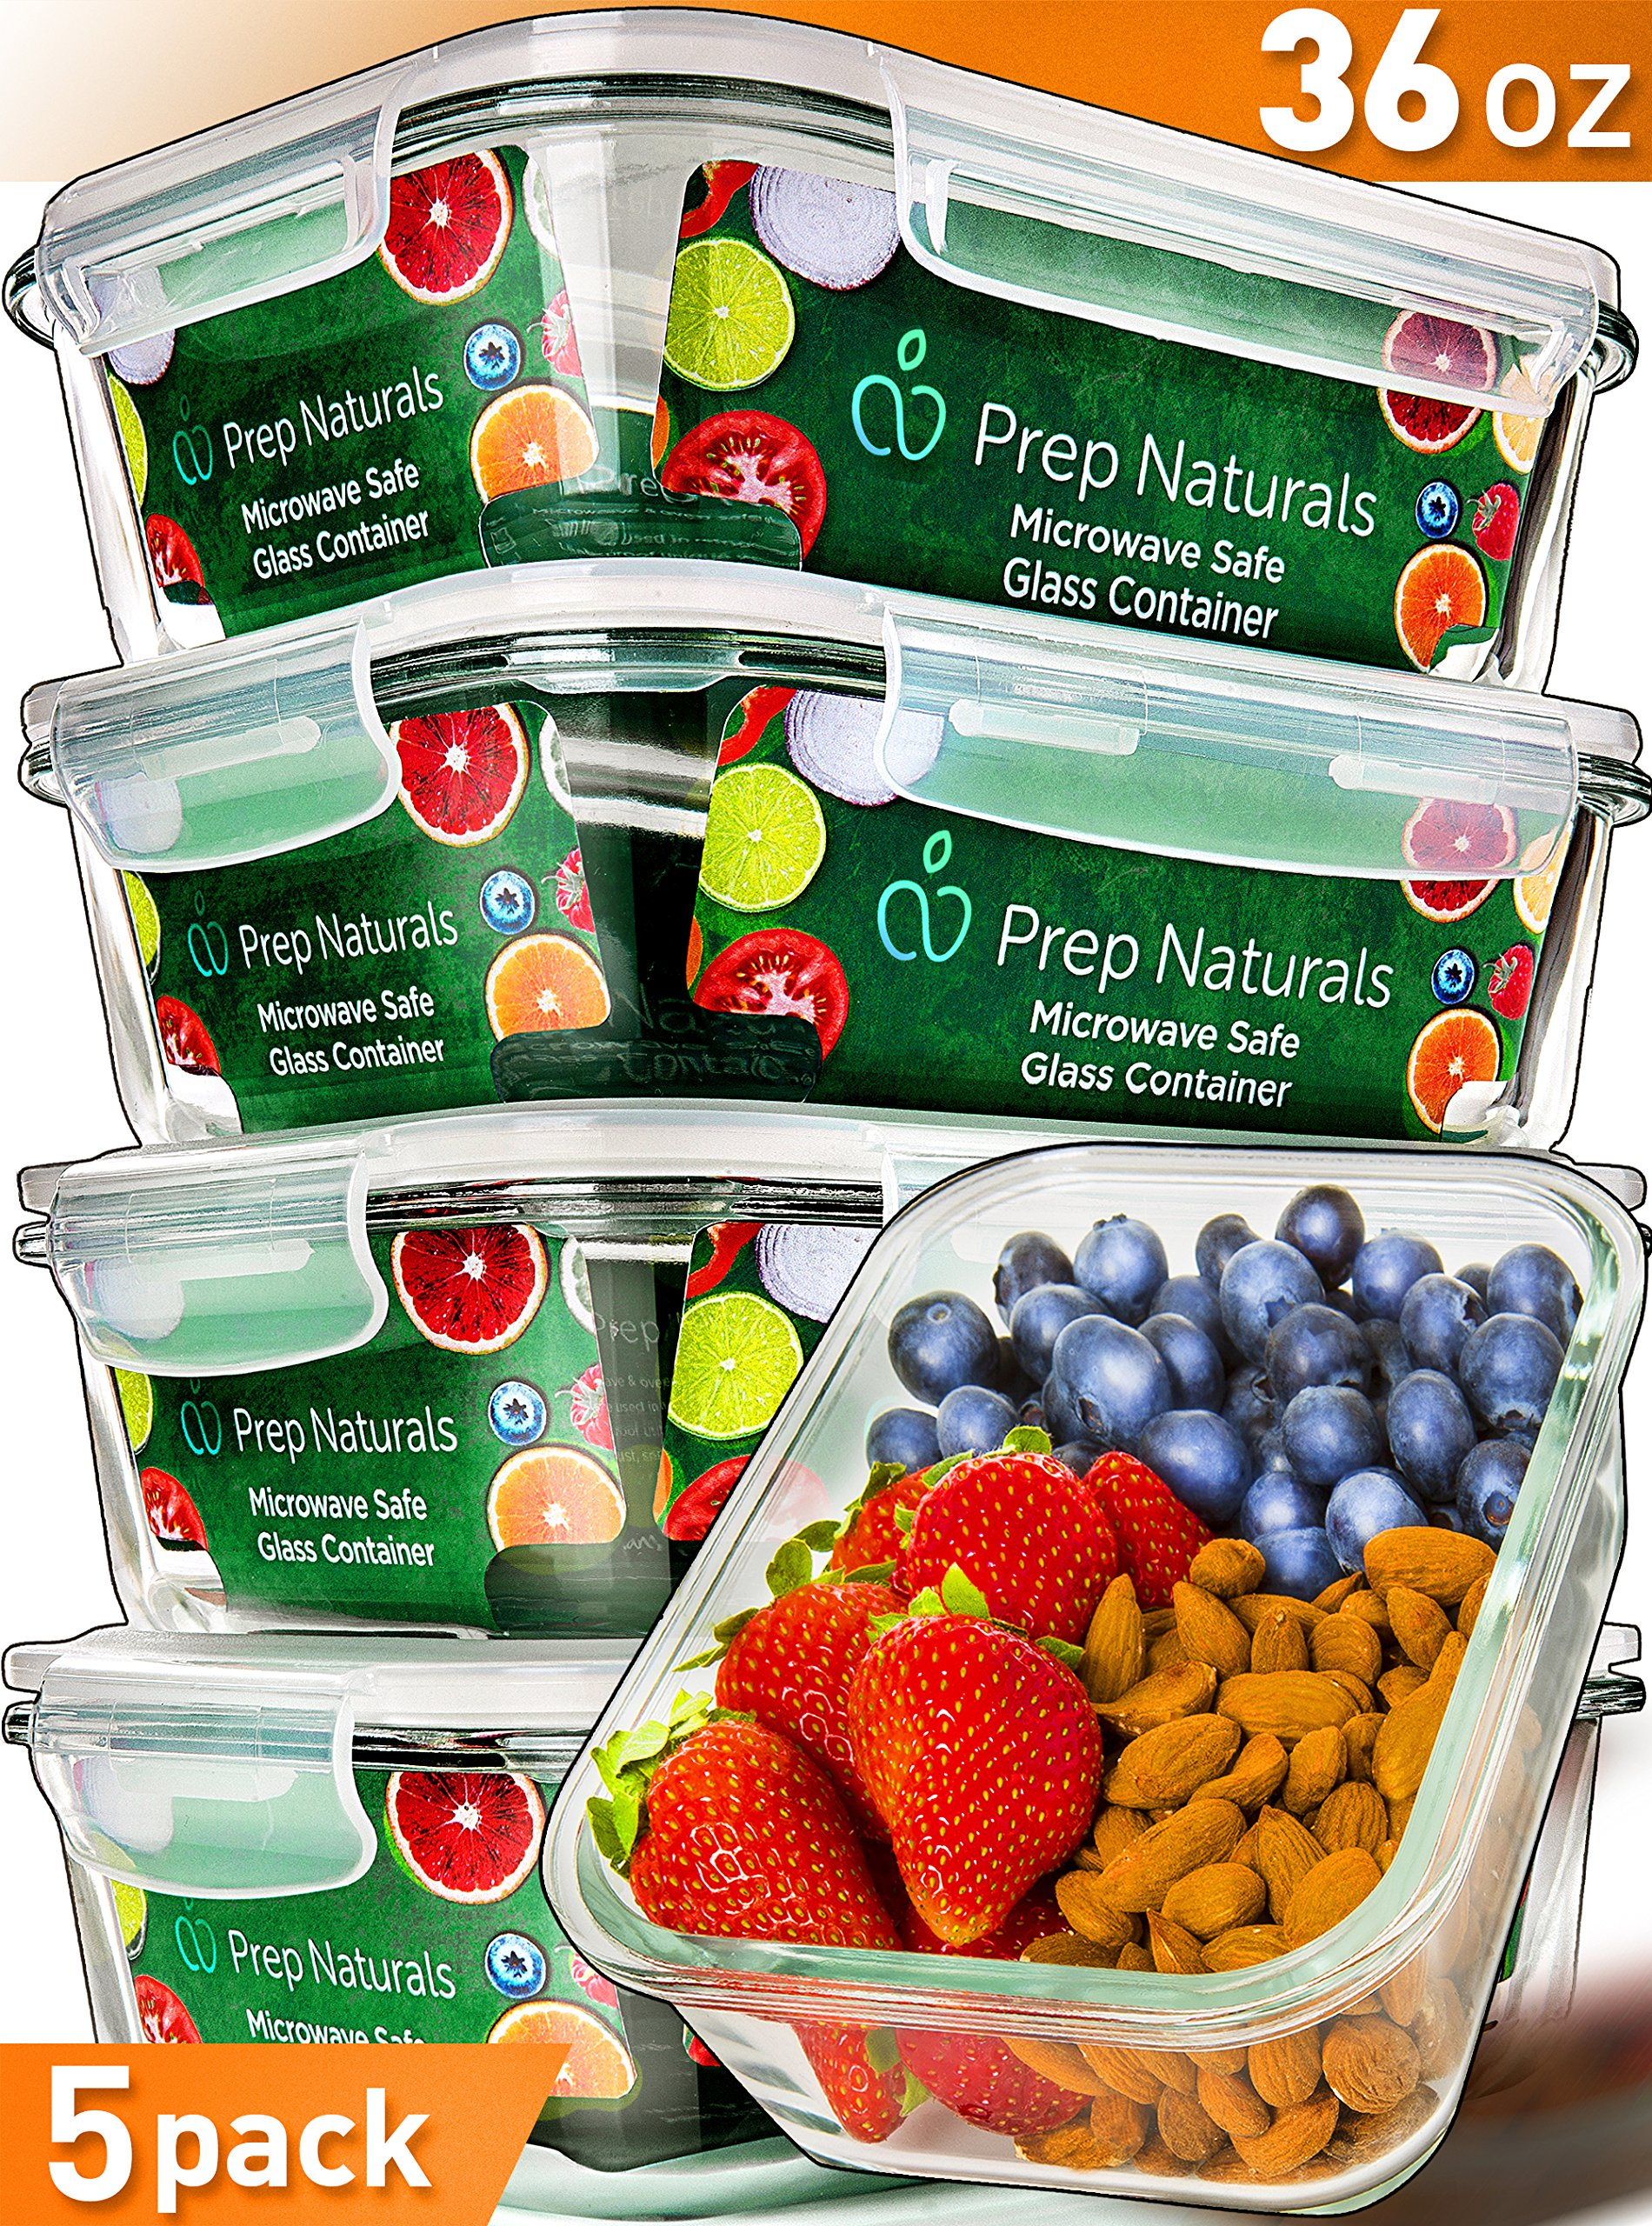 [5-Pack,36oz] Glass Meal Prep Containers Glass - Food Storage Containers with Lids - Food Containers Food Prep Containers Glass Storage Containers with lids Glass Containers Glass Lunch Containers by Prep Naturals